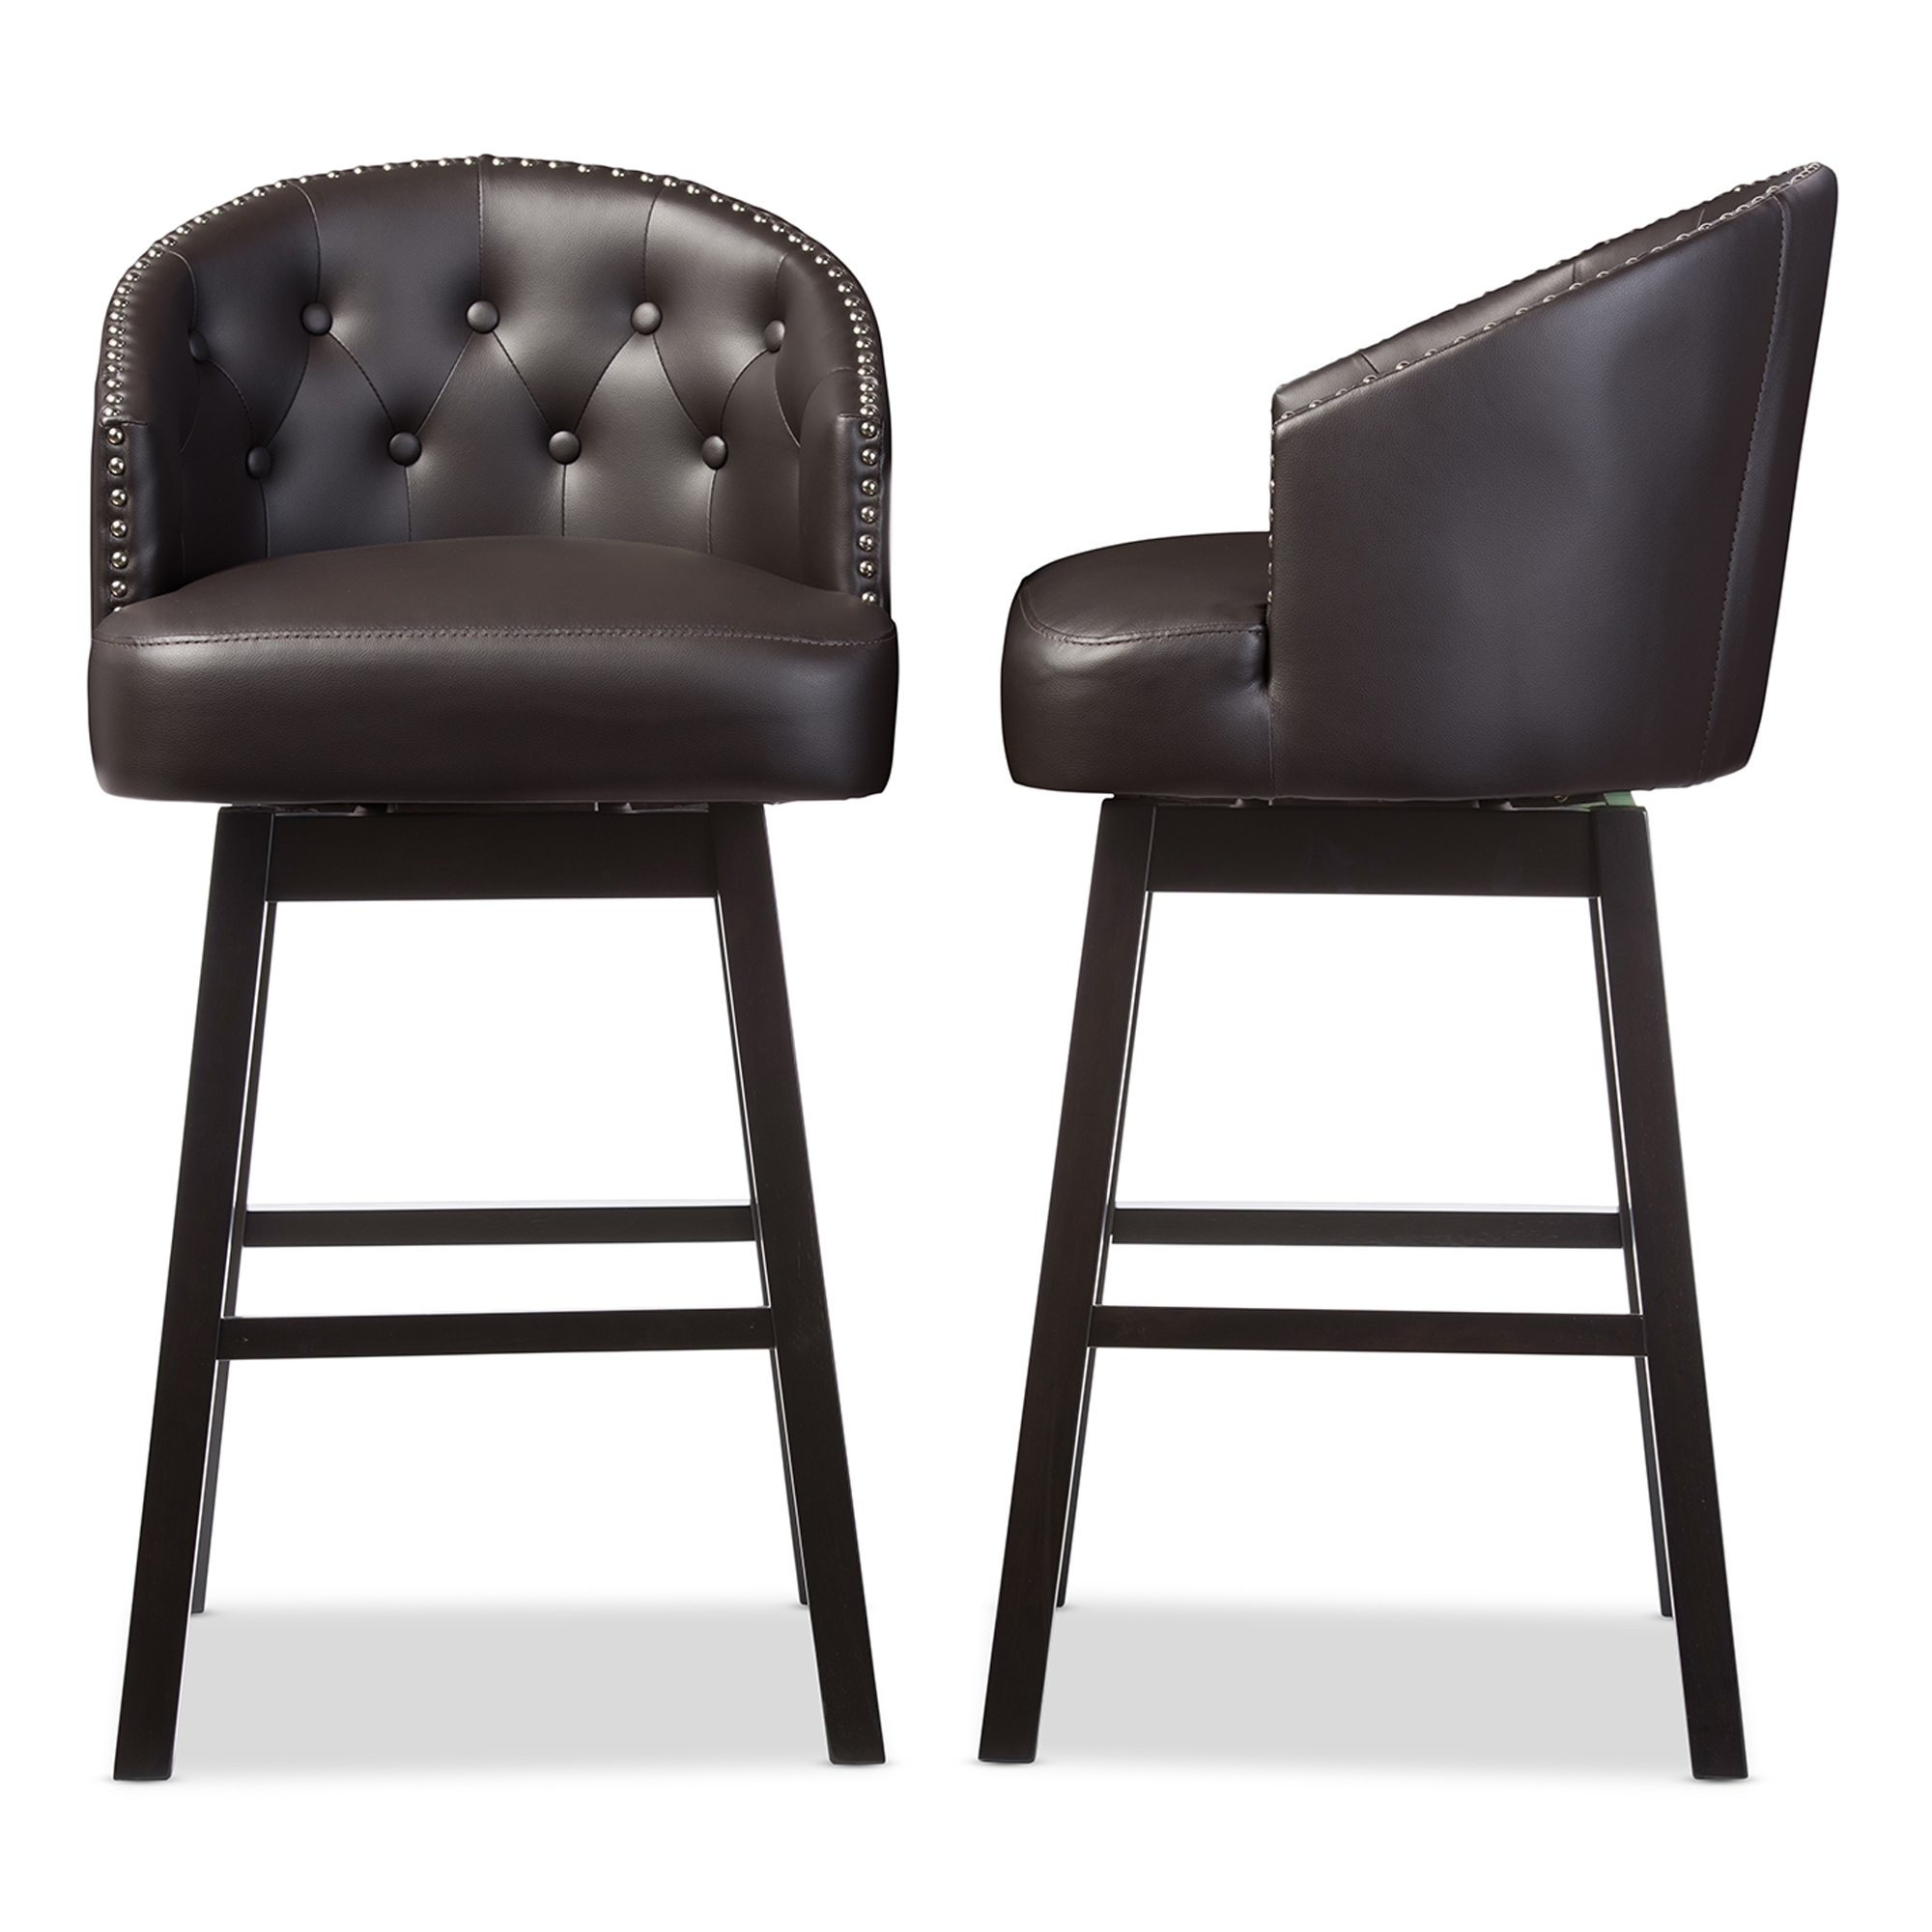 Baxton Studio Avril Modern and Contemporary Brown Faux Leather Tufted Swivel Barstool with Nail heads Trim  sc 1 st  Baxton Studio Outlet & Baxton Studio Avril Modern and Contemporary Brown Faux Leather ... islam-shia.org